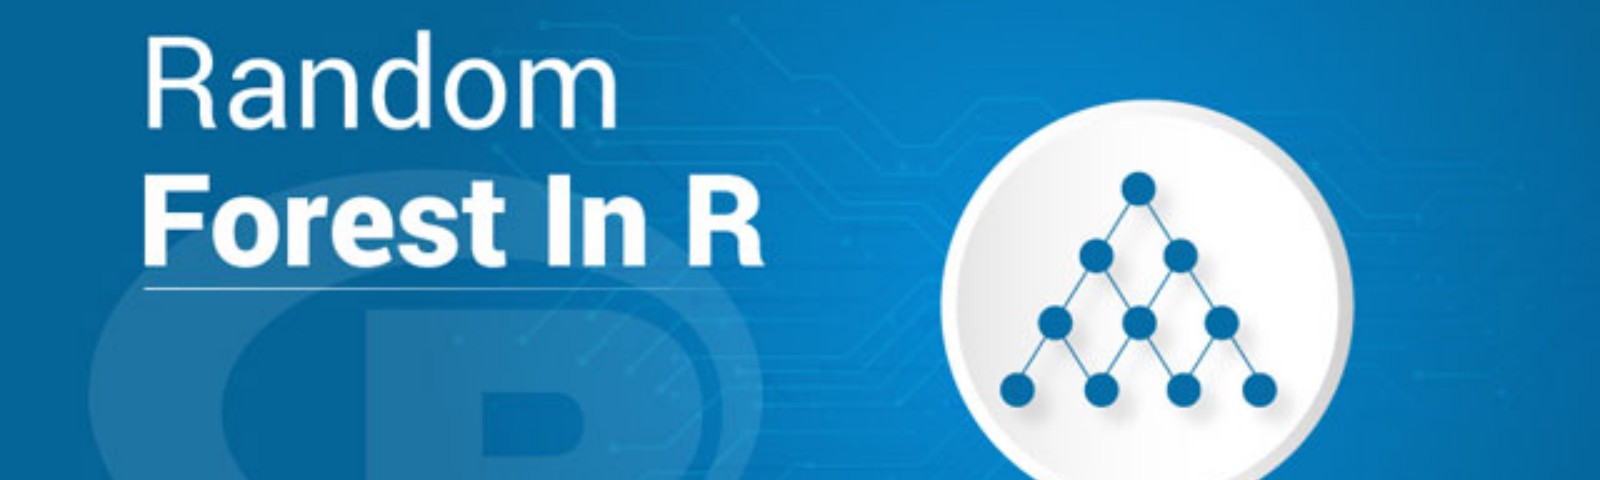 Complete Tutorial On Random Forest In R With Examples | Edureka